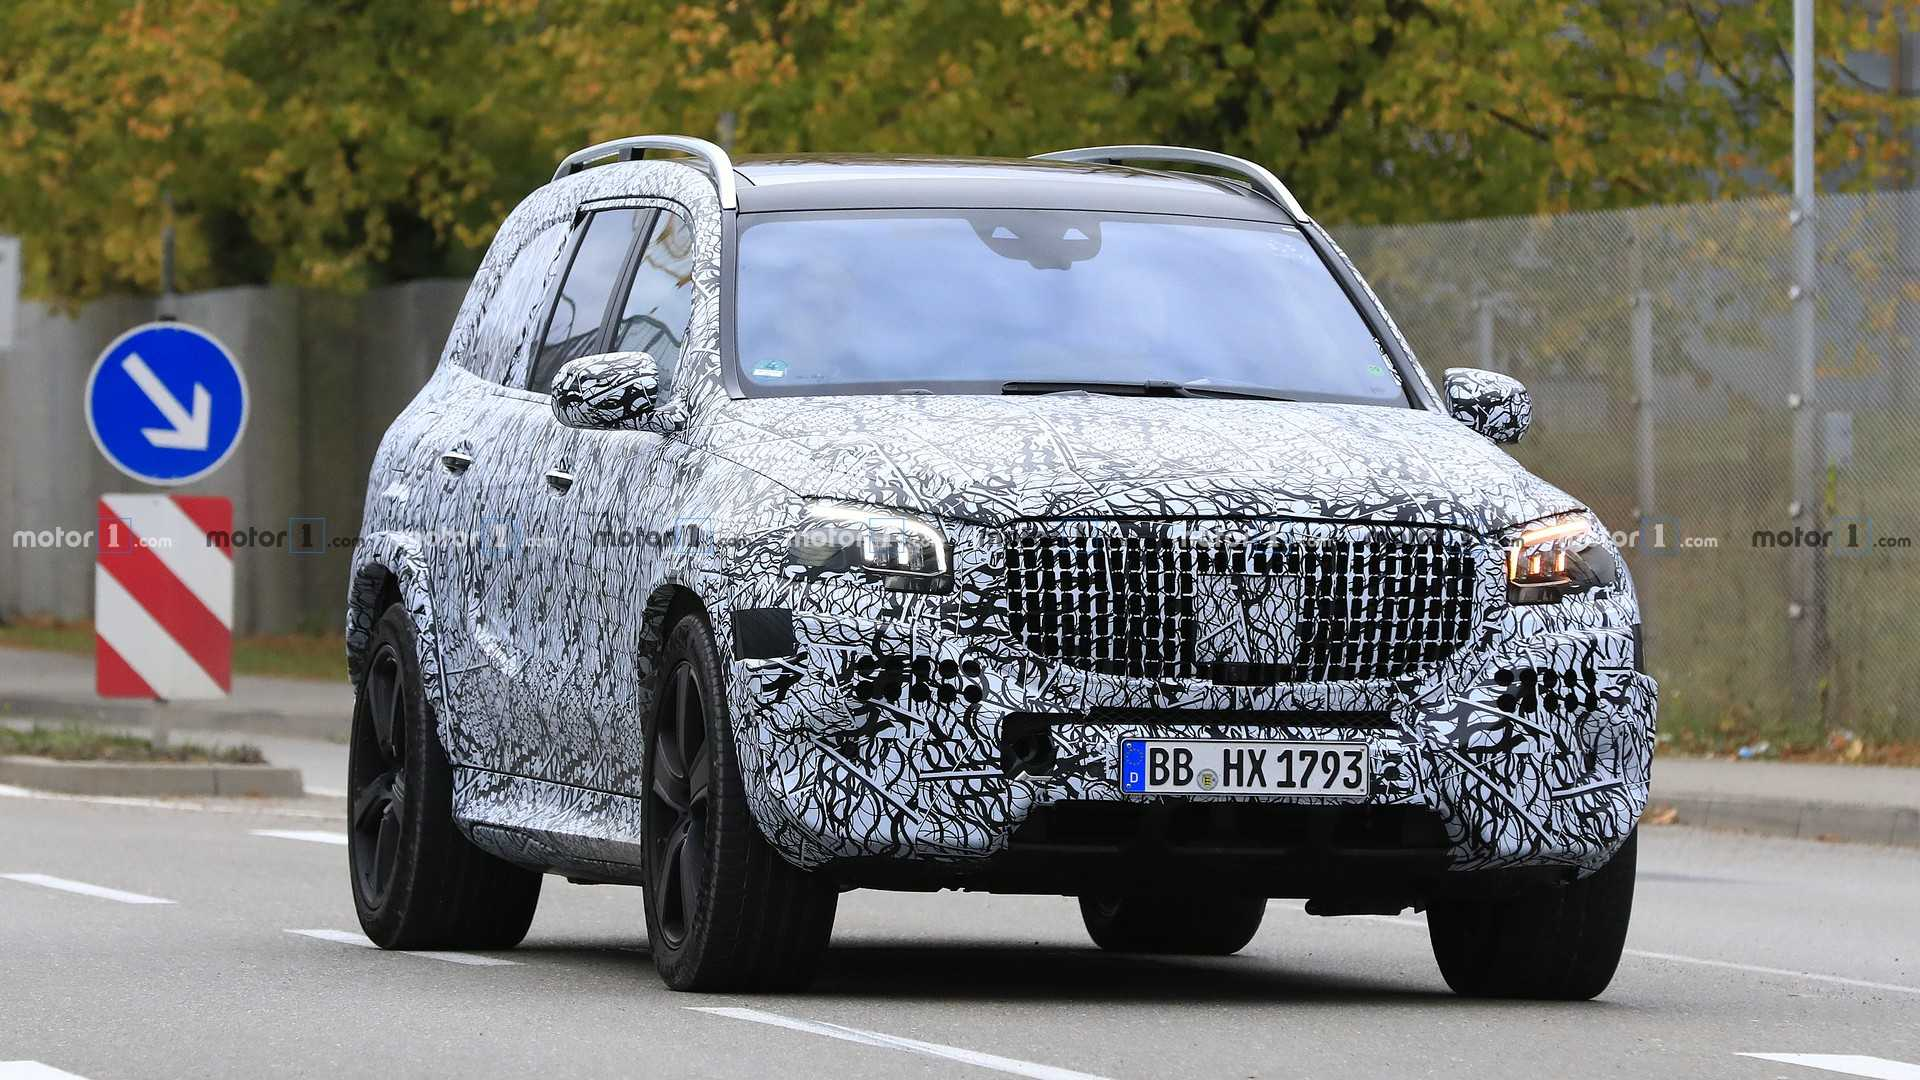 39 Concept of Mercedes Maybach Gls 2020 Specs and Review with Mercedes Maybach Gls 2020